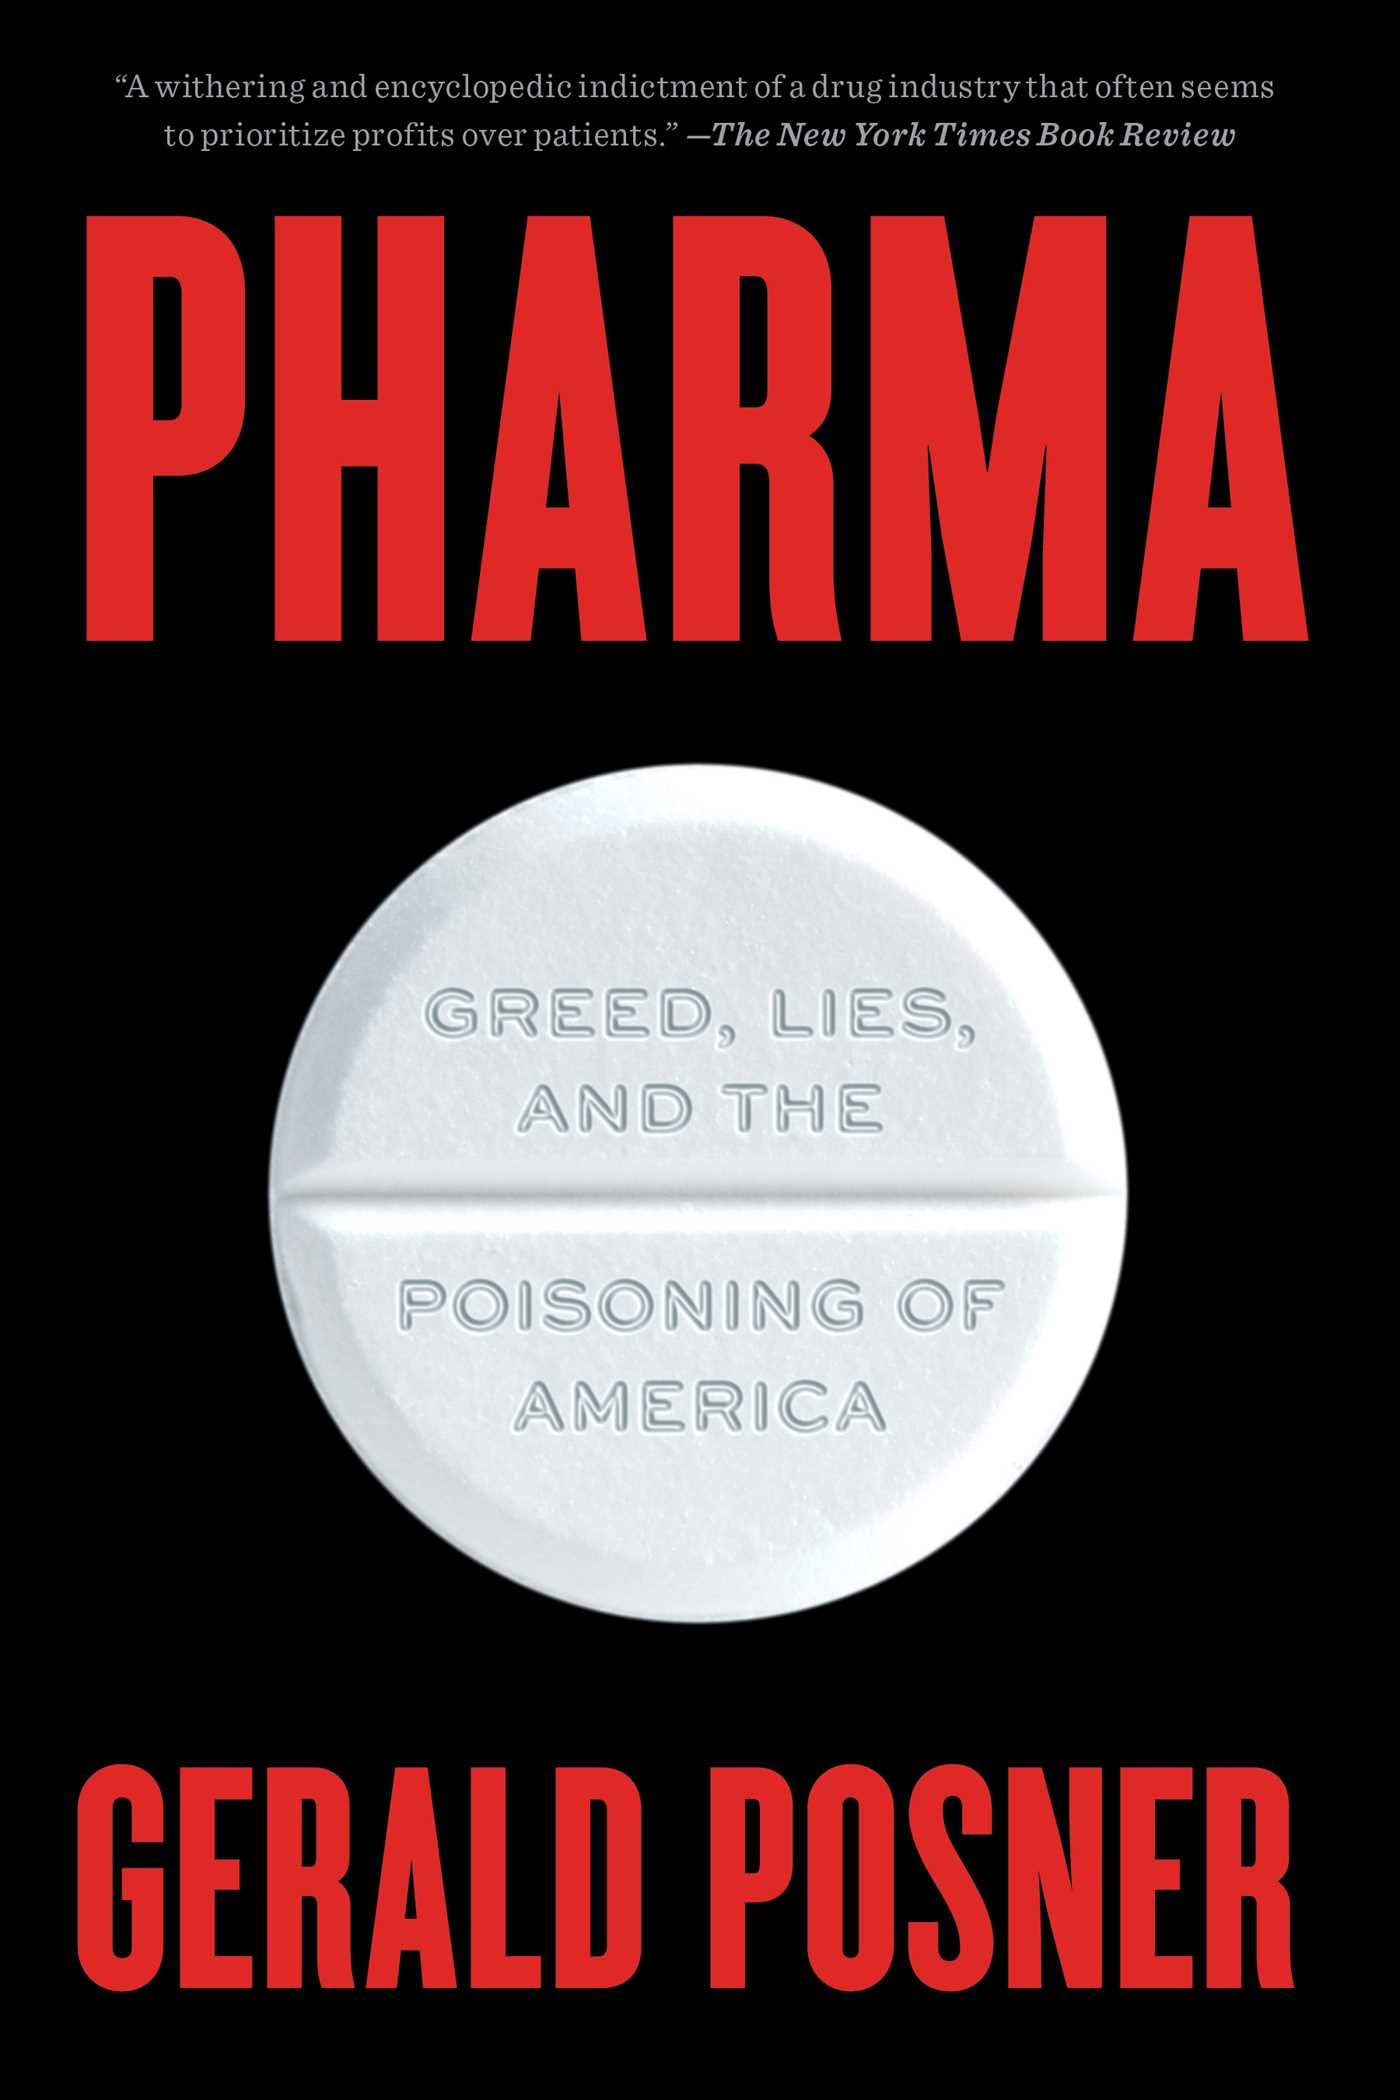 Pharma Greed, Lies, and the Poisoning of America